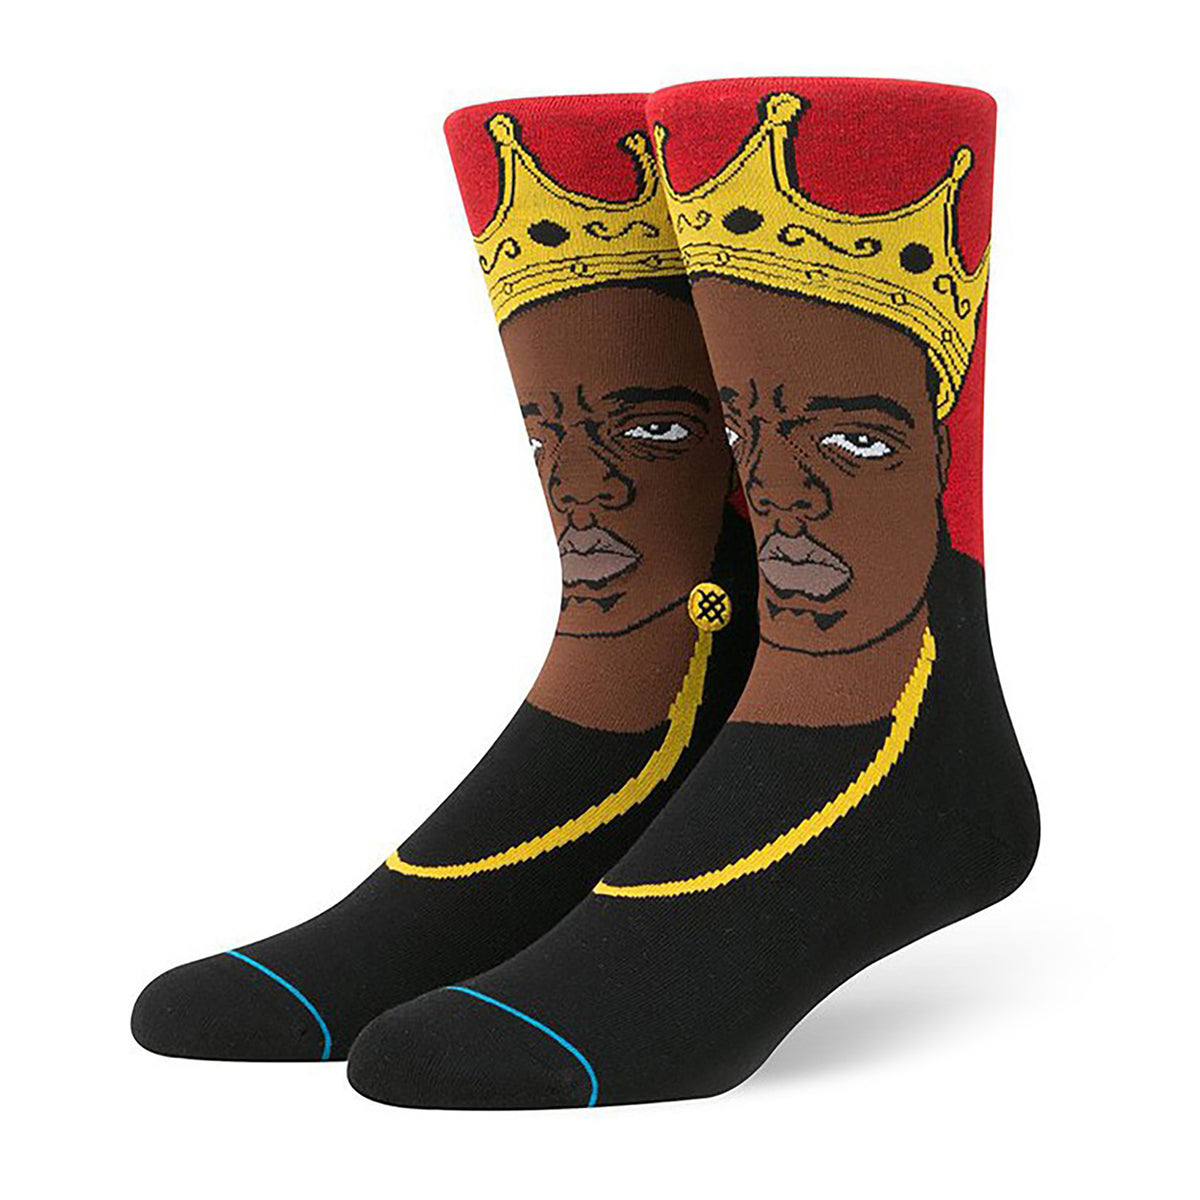 Stance: Notorious Big Socks - Red